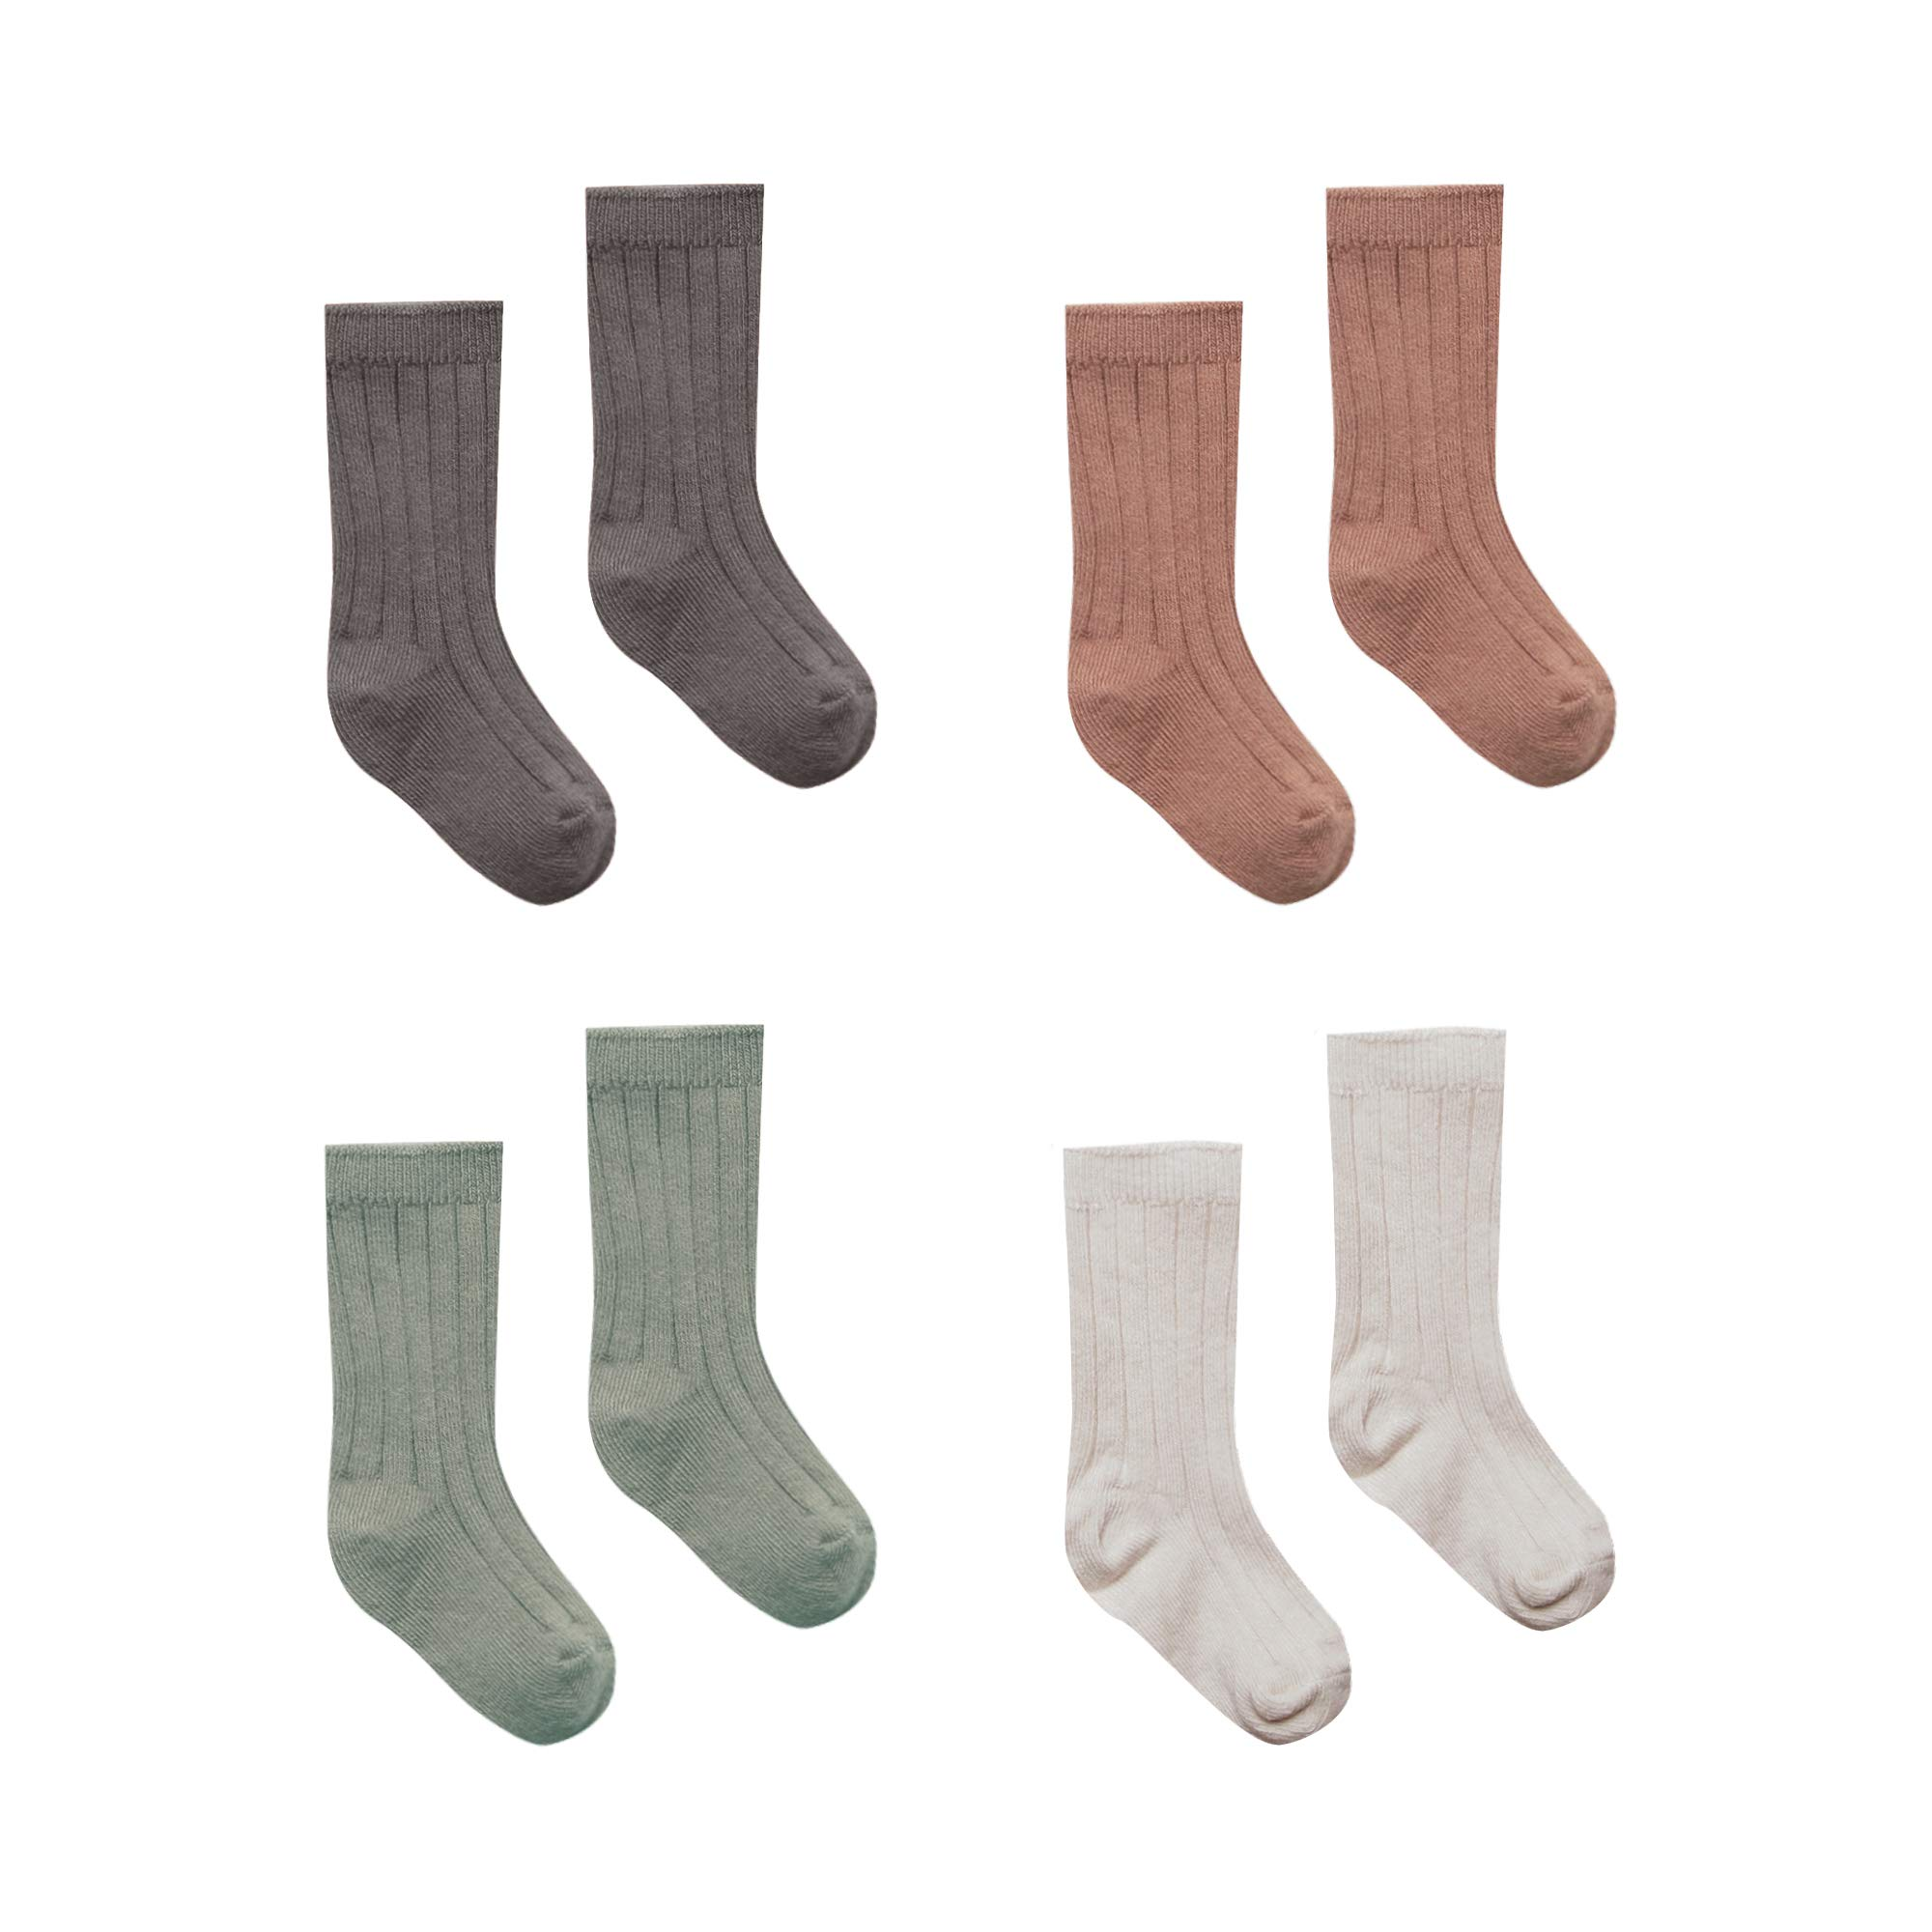 Quincy Mae Newborn, Baby, and Toddler Socks, Set of 4